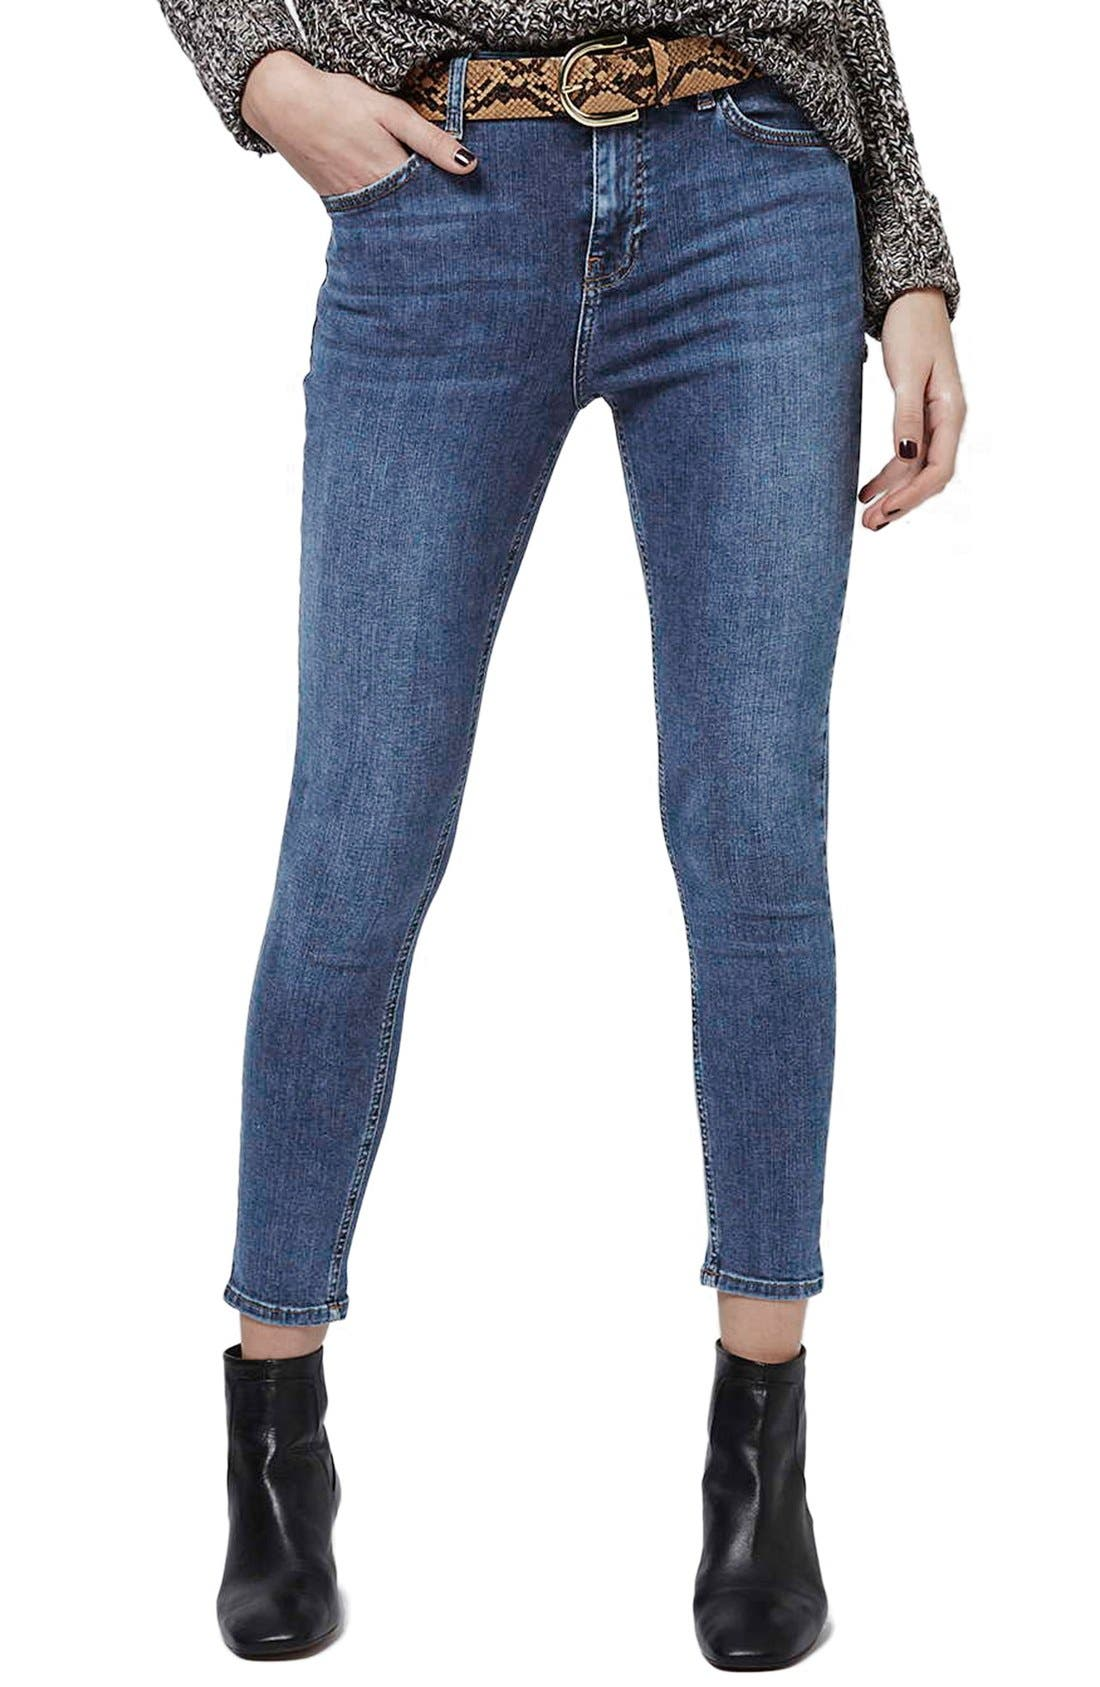 'Jamie' High Rise Ankle Skinny Jeans,                         Main,                         color, MID DENIM